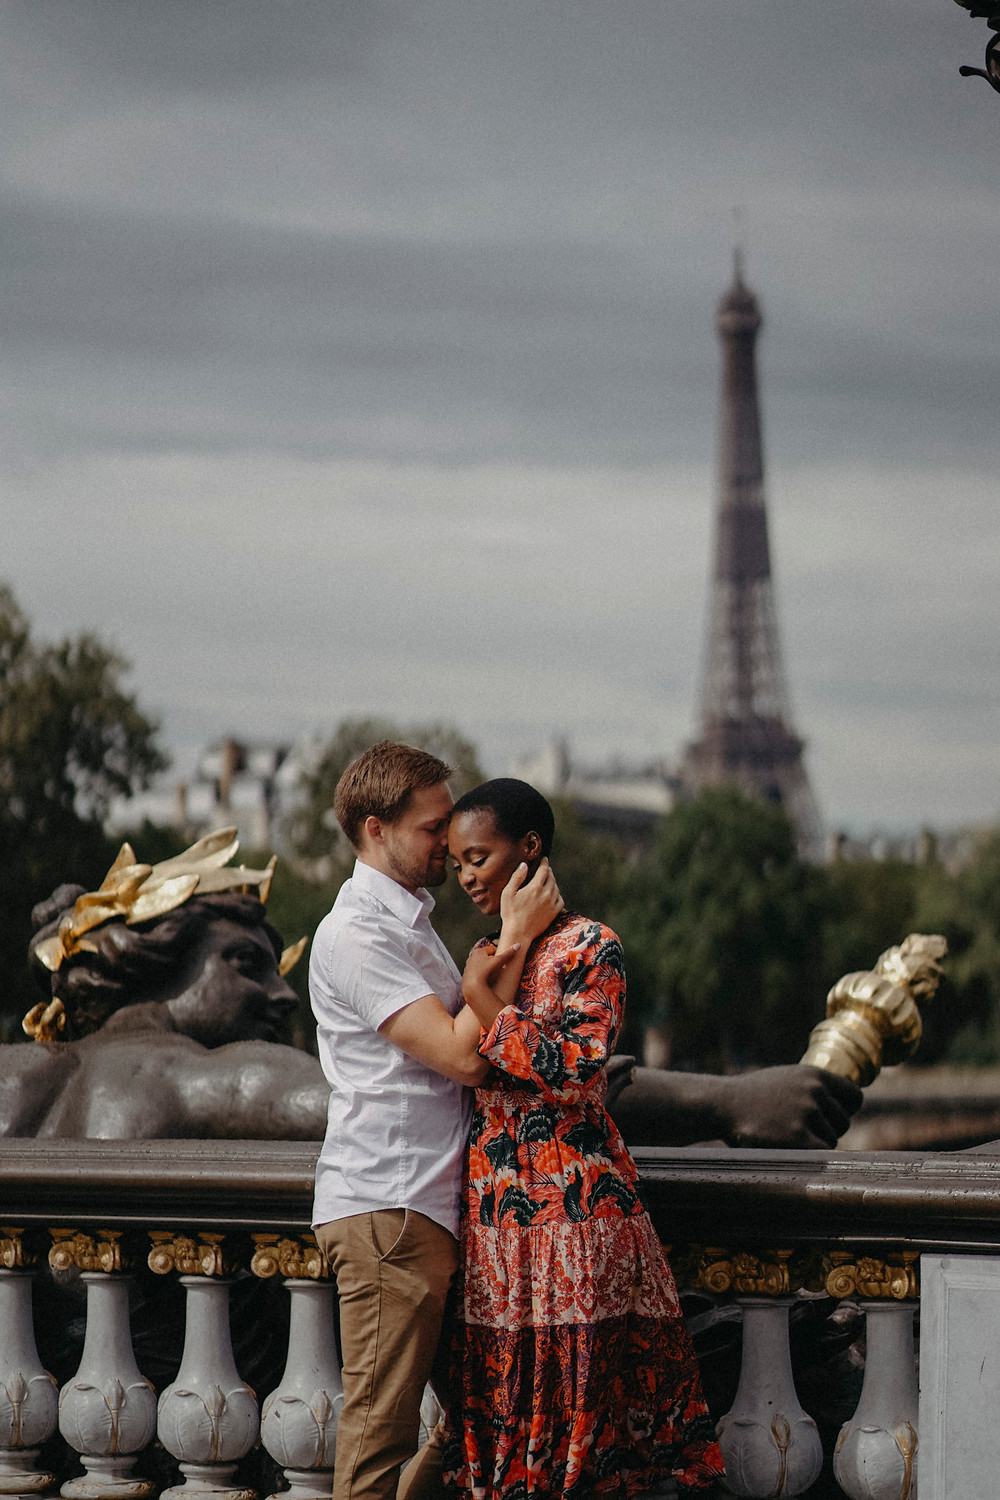 Interracial Couple intimate with eiffel tower in the background